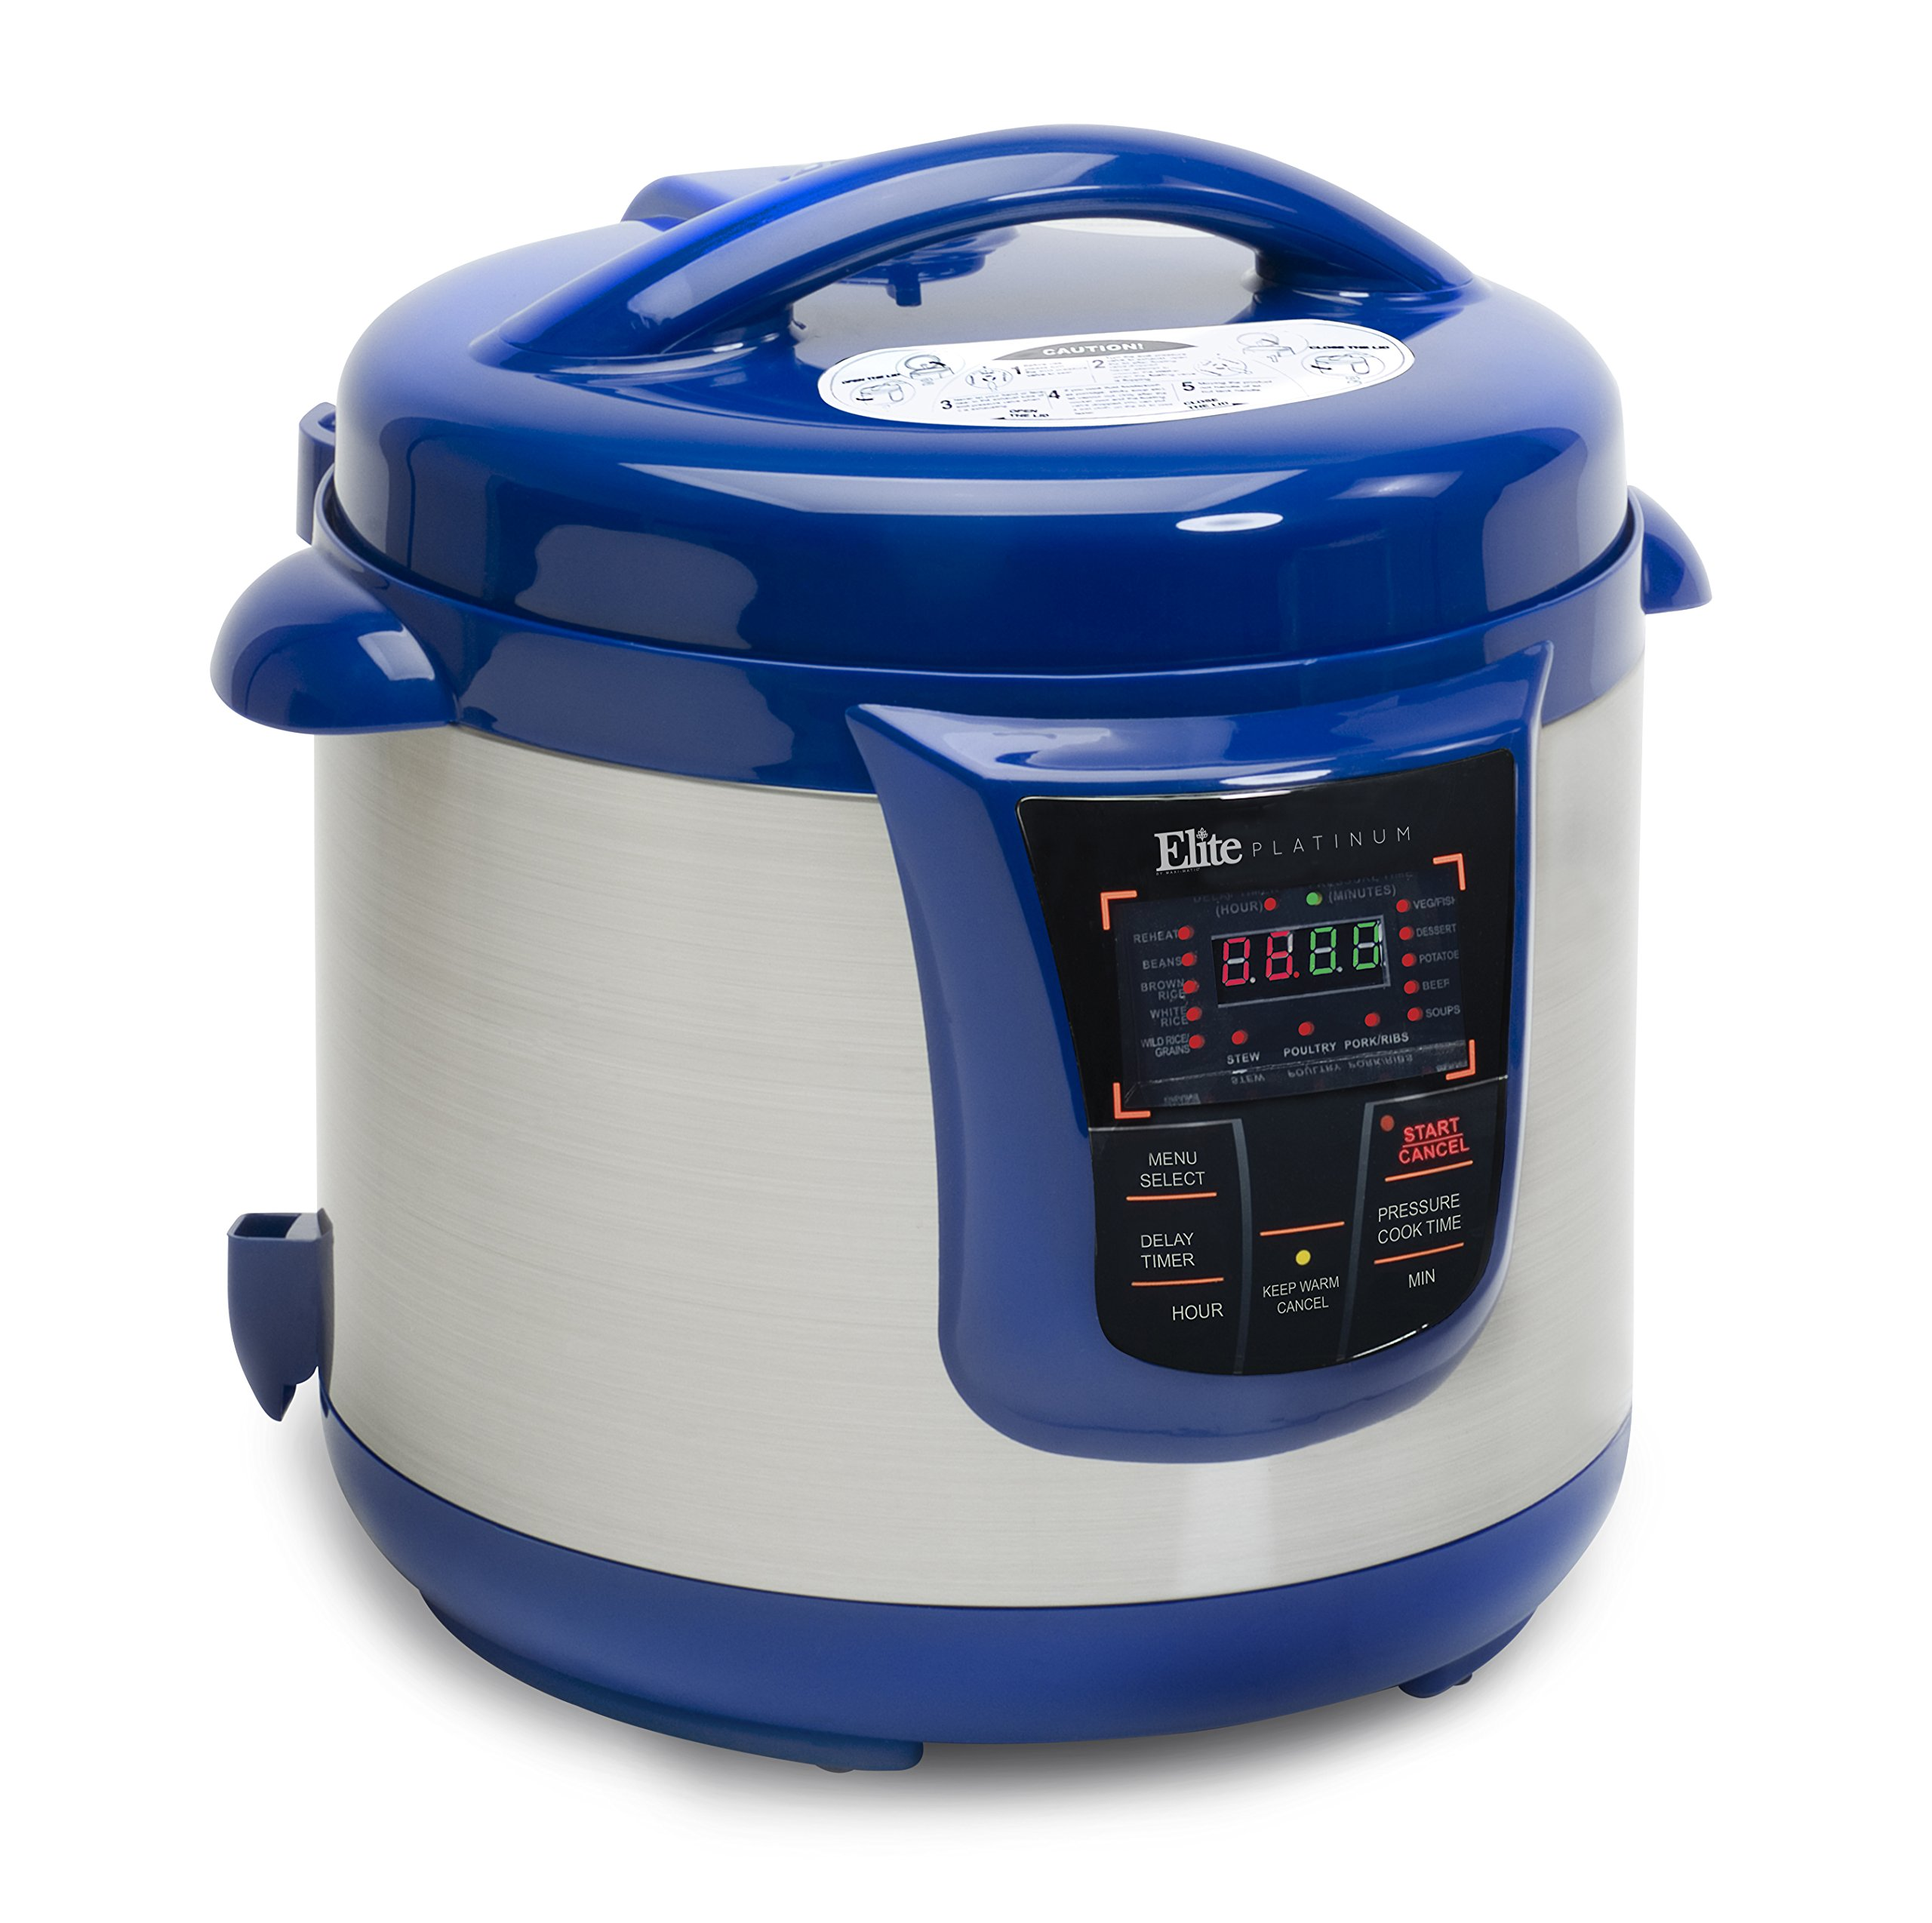 Elite Platinum 8 Quart 14-in-1 Multi-Use Programmable Pressure Cooker, Slow Cooker, Rice Cooker, Sauté, and Warmer - Blue